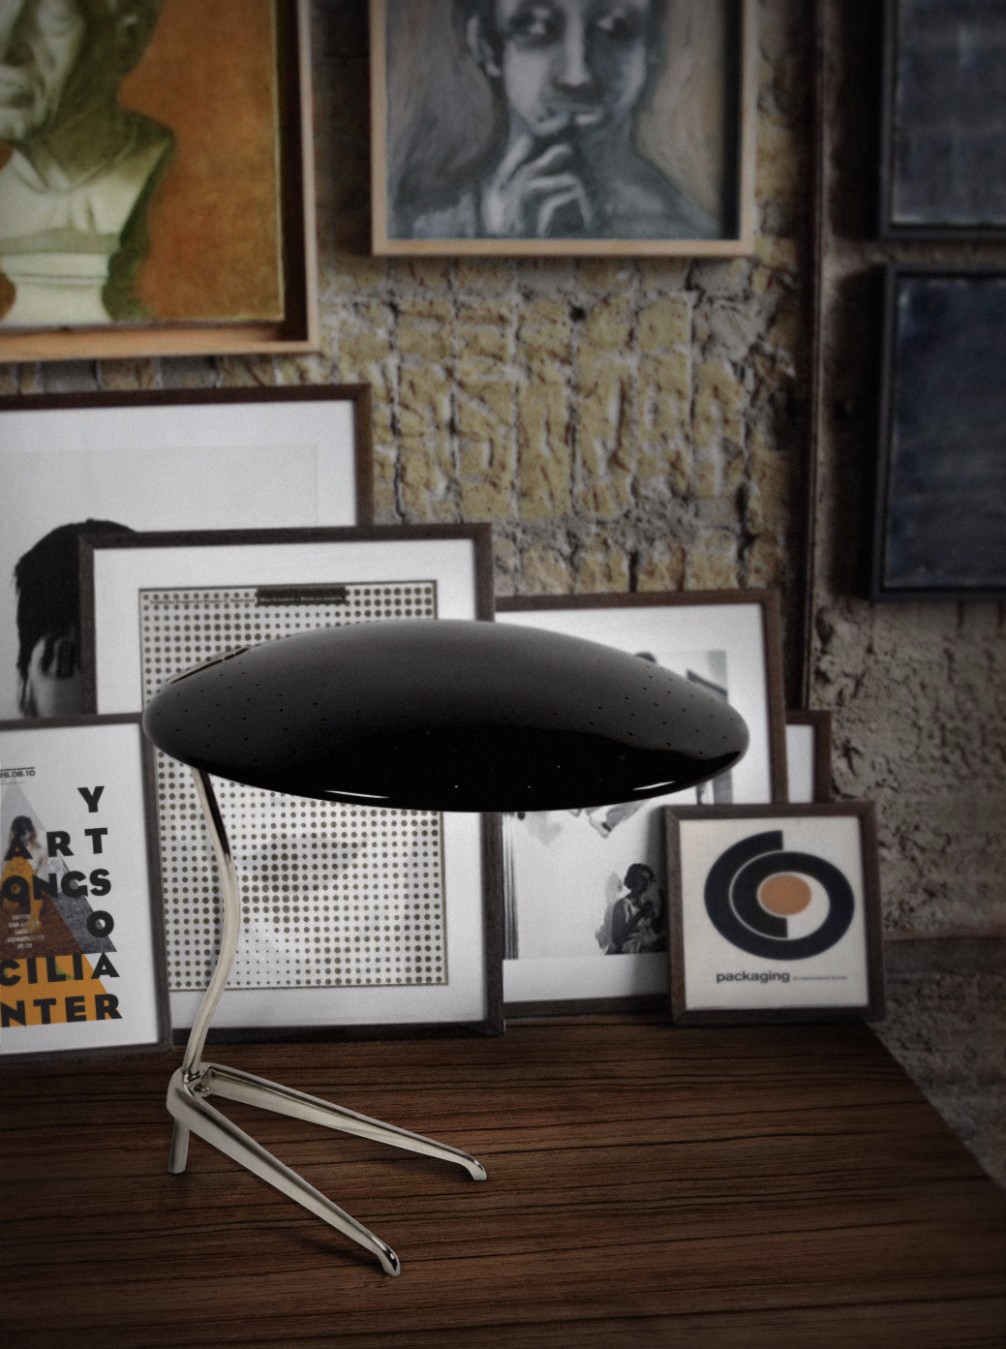 Let's Meet DelightFULL's Most Exclusive and Bespoke Mid-Century Lamps 4 mid-century lamps Let's Meet DelightFULL's Most Exclusive and Bespoke Mid-Century Lamps Lets Meet DelightFULLs Most Exclusive and Bespoke Mid Century Lamps 4